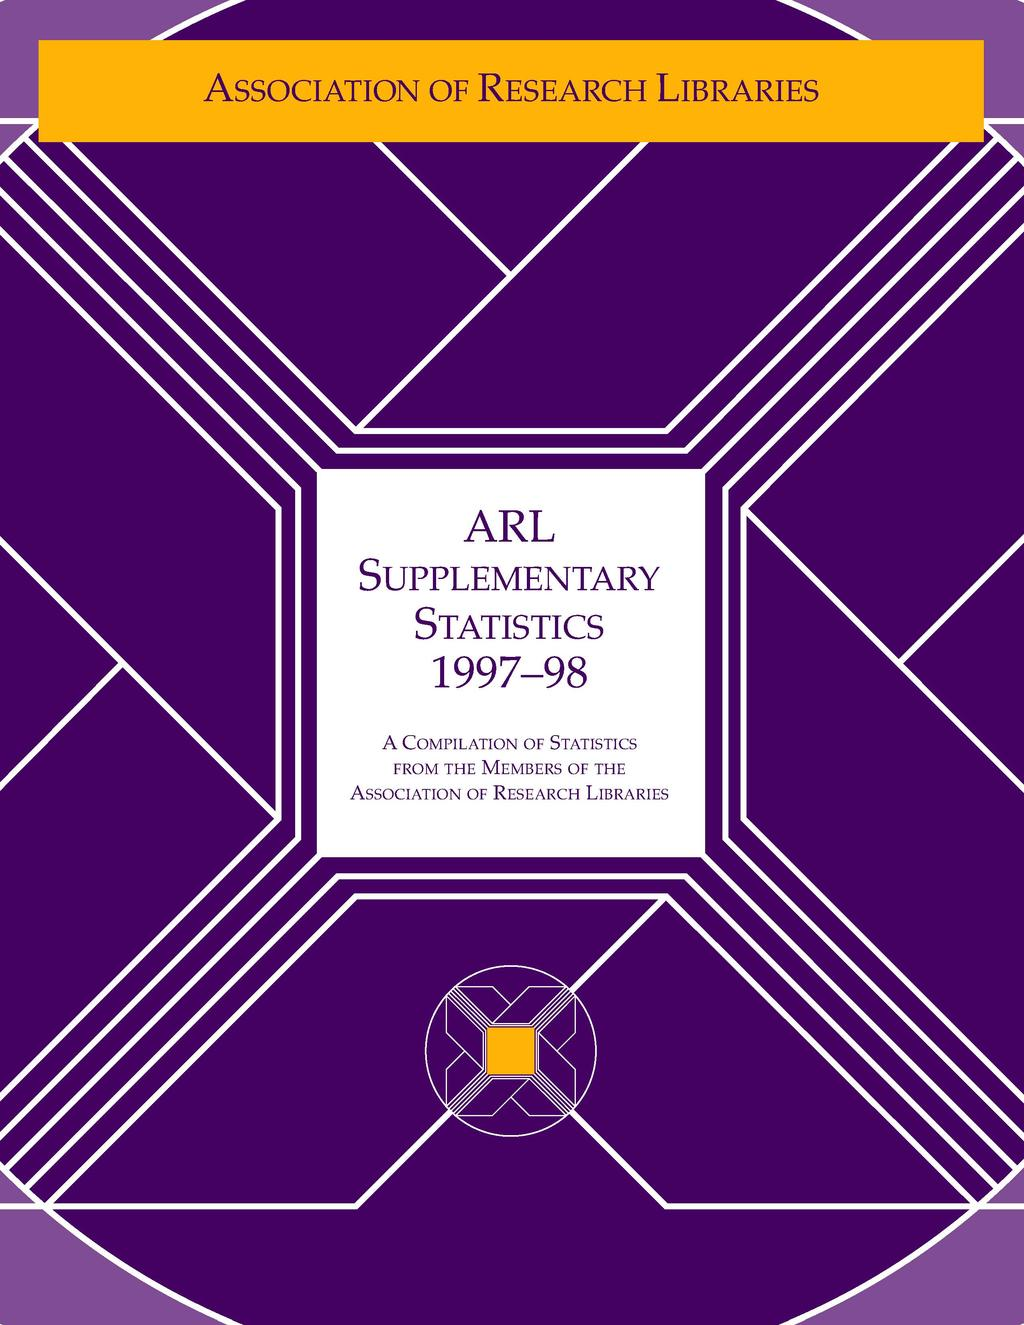 ARL SUPPLEMENTARY STATISTICS 1997-98 A COMPILATION OF